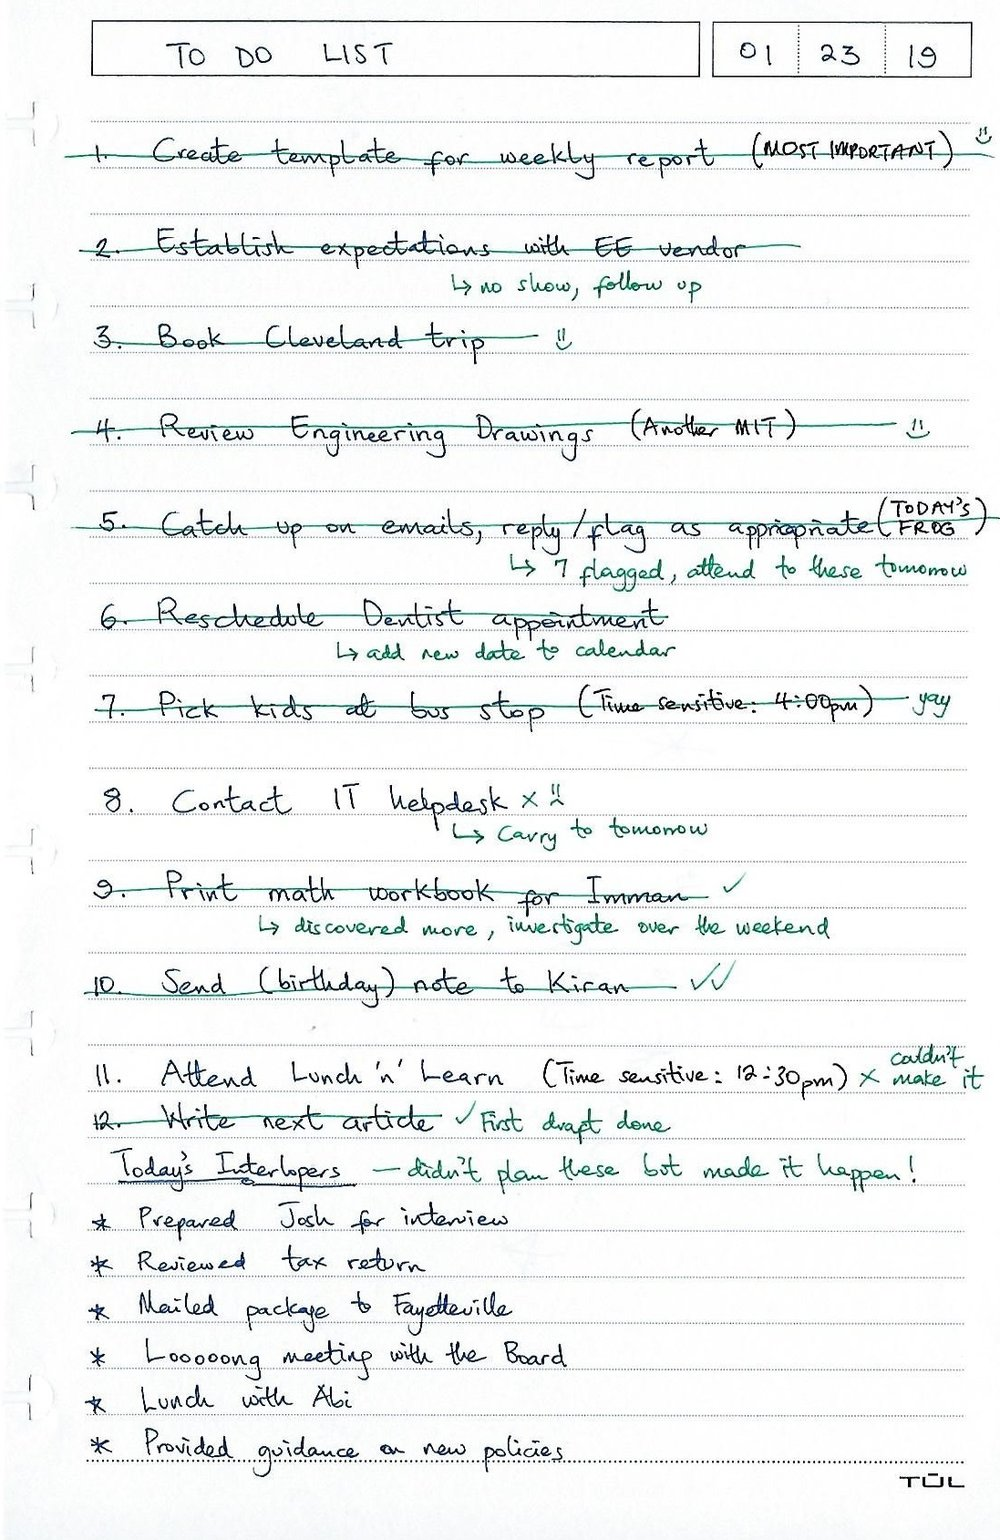 This is a made-up to-do list by me to illustrate the points covered below. Photo credit:  Michael Taiwo